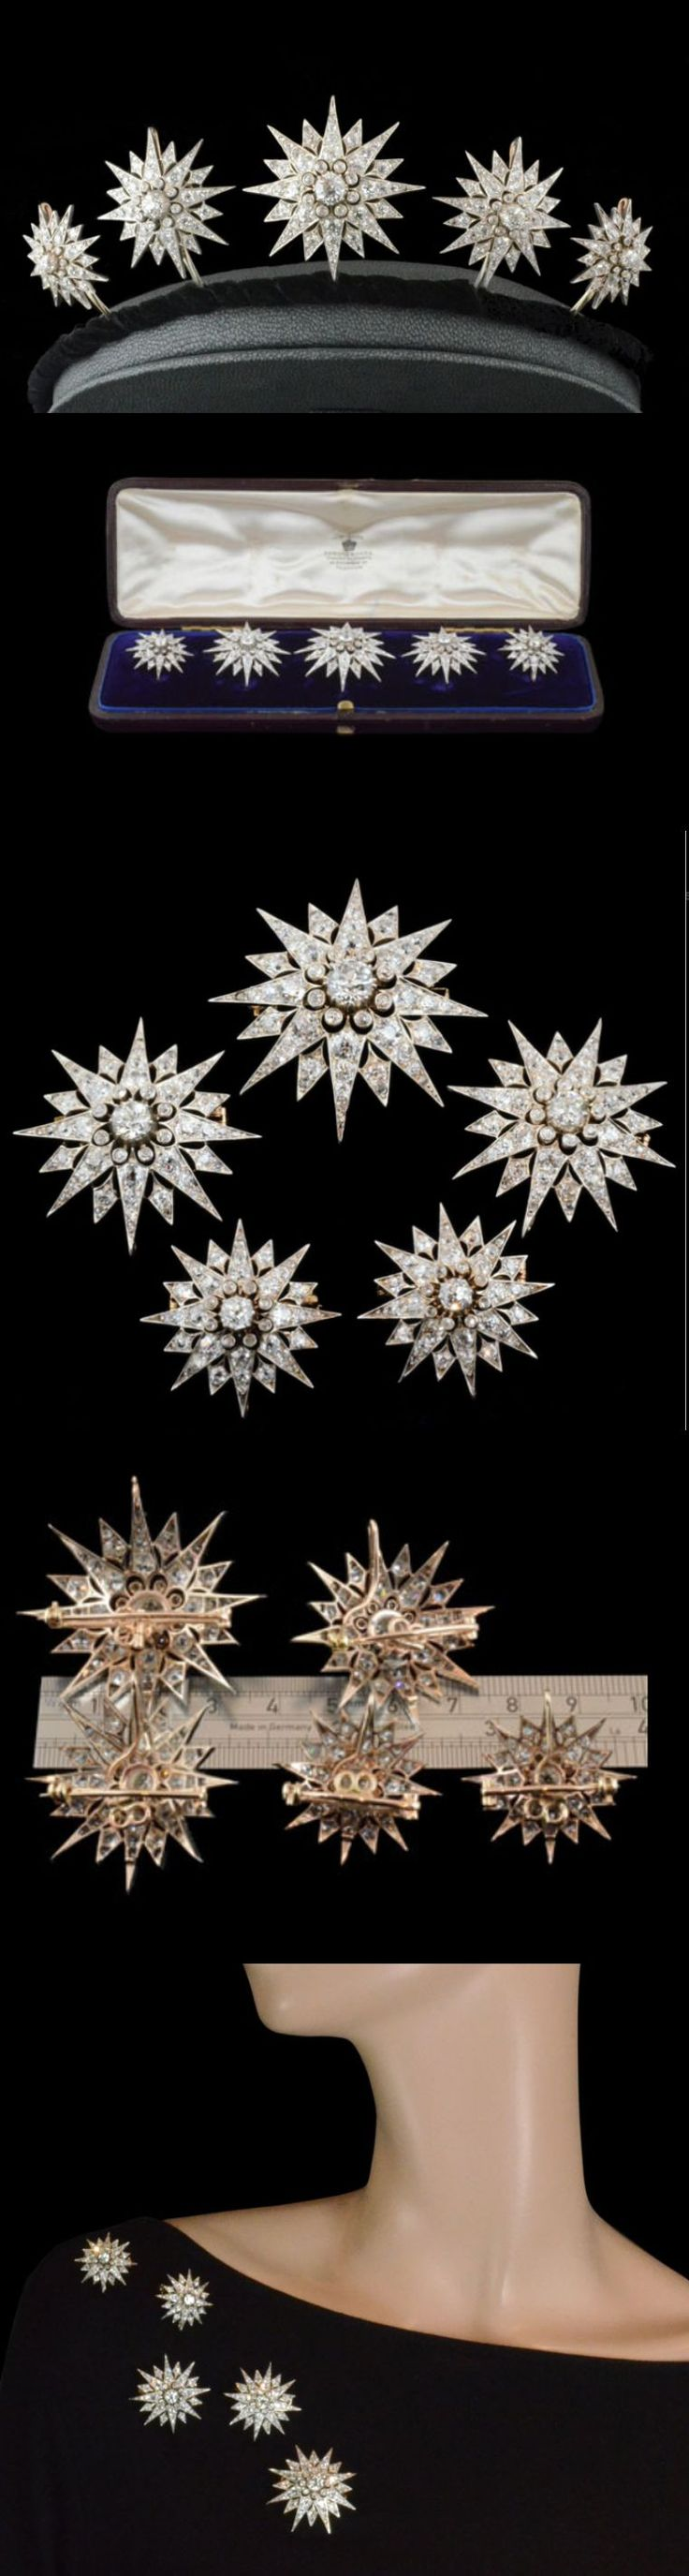 Victorian diamond star tiara with five detachable diamond star brooches set with Old mine cut diamonds in silver and 18c gold setting - English, c.1880.